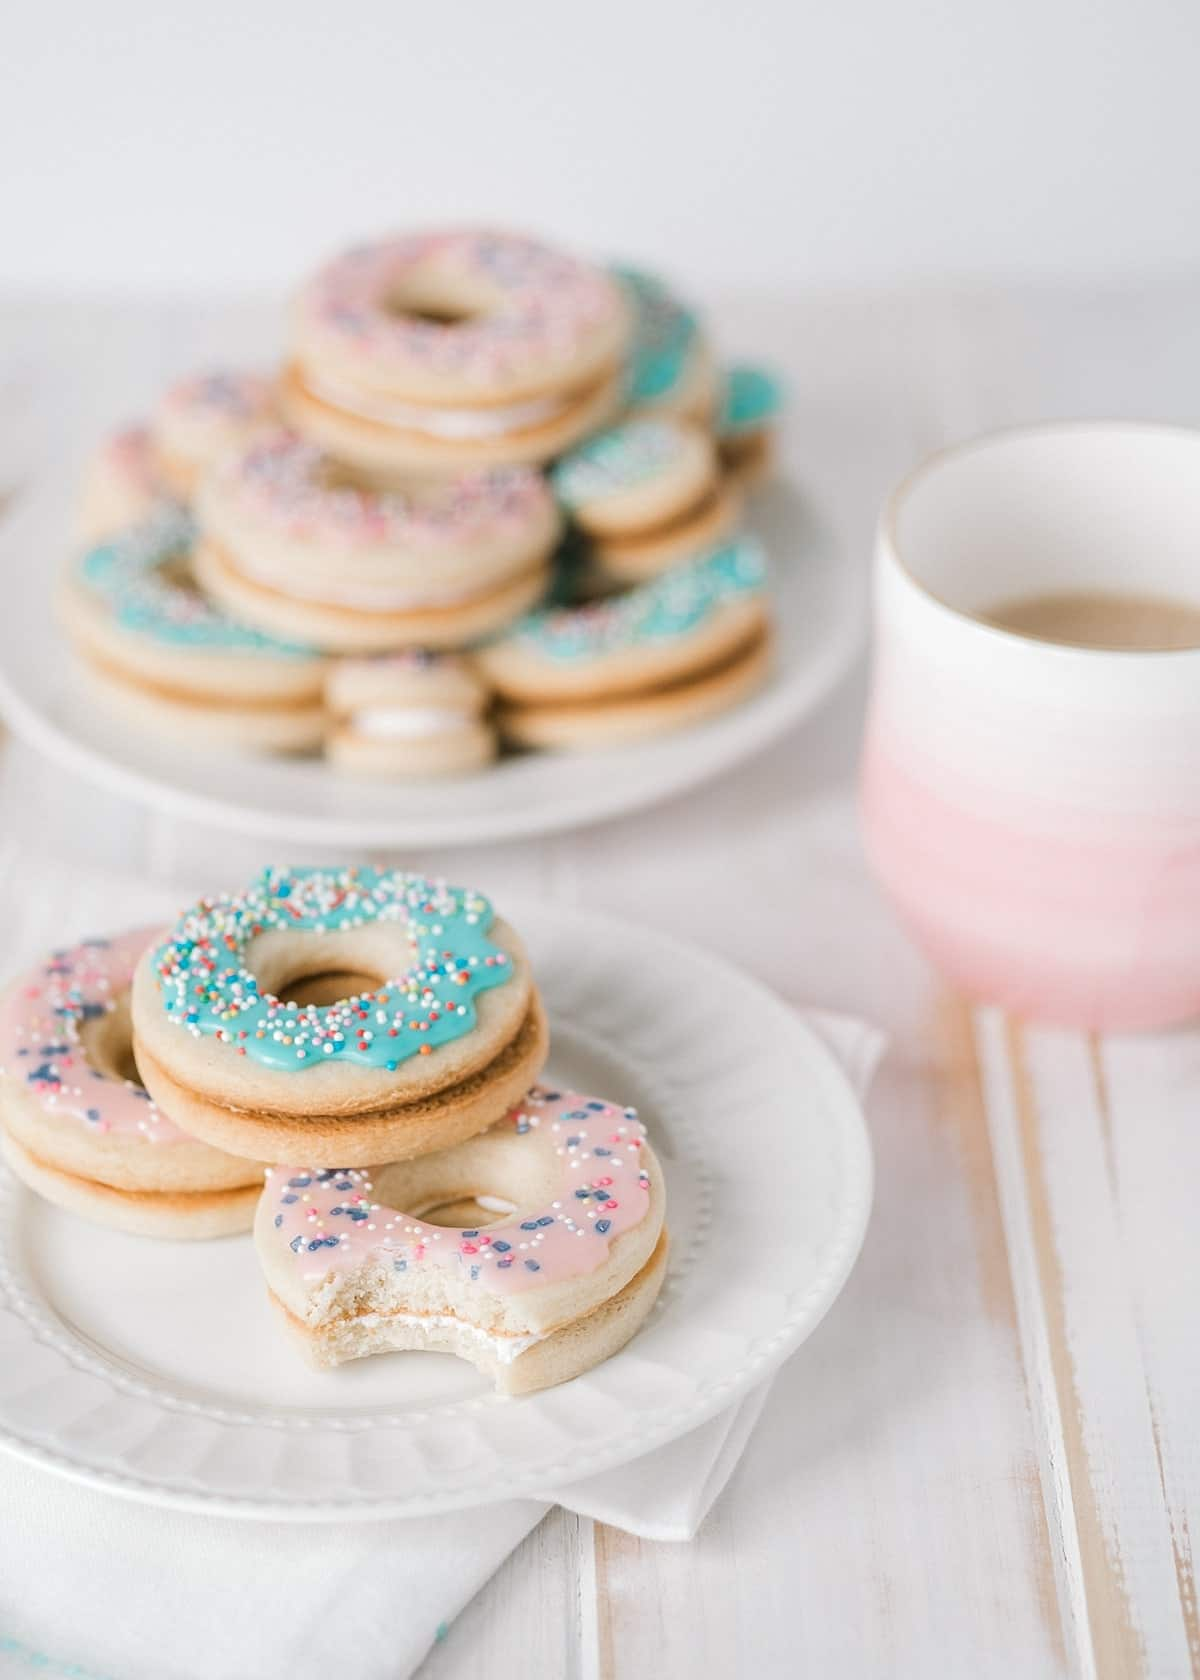 Doughnut Sandwich Cookies for a Good Cause - Cookies for Kids Cancer